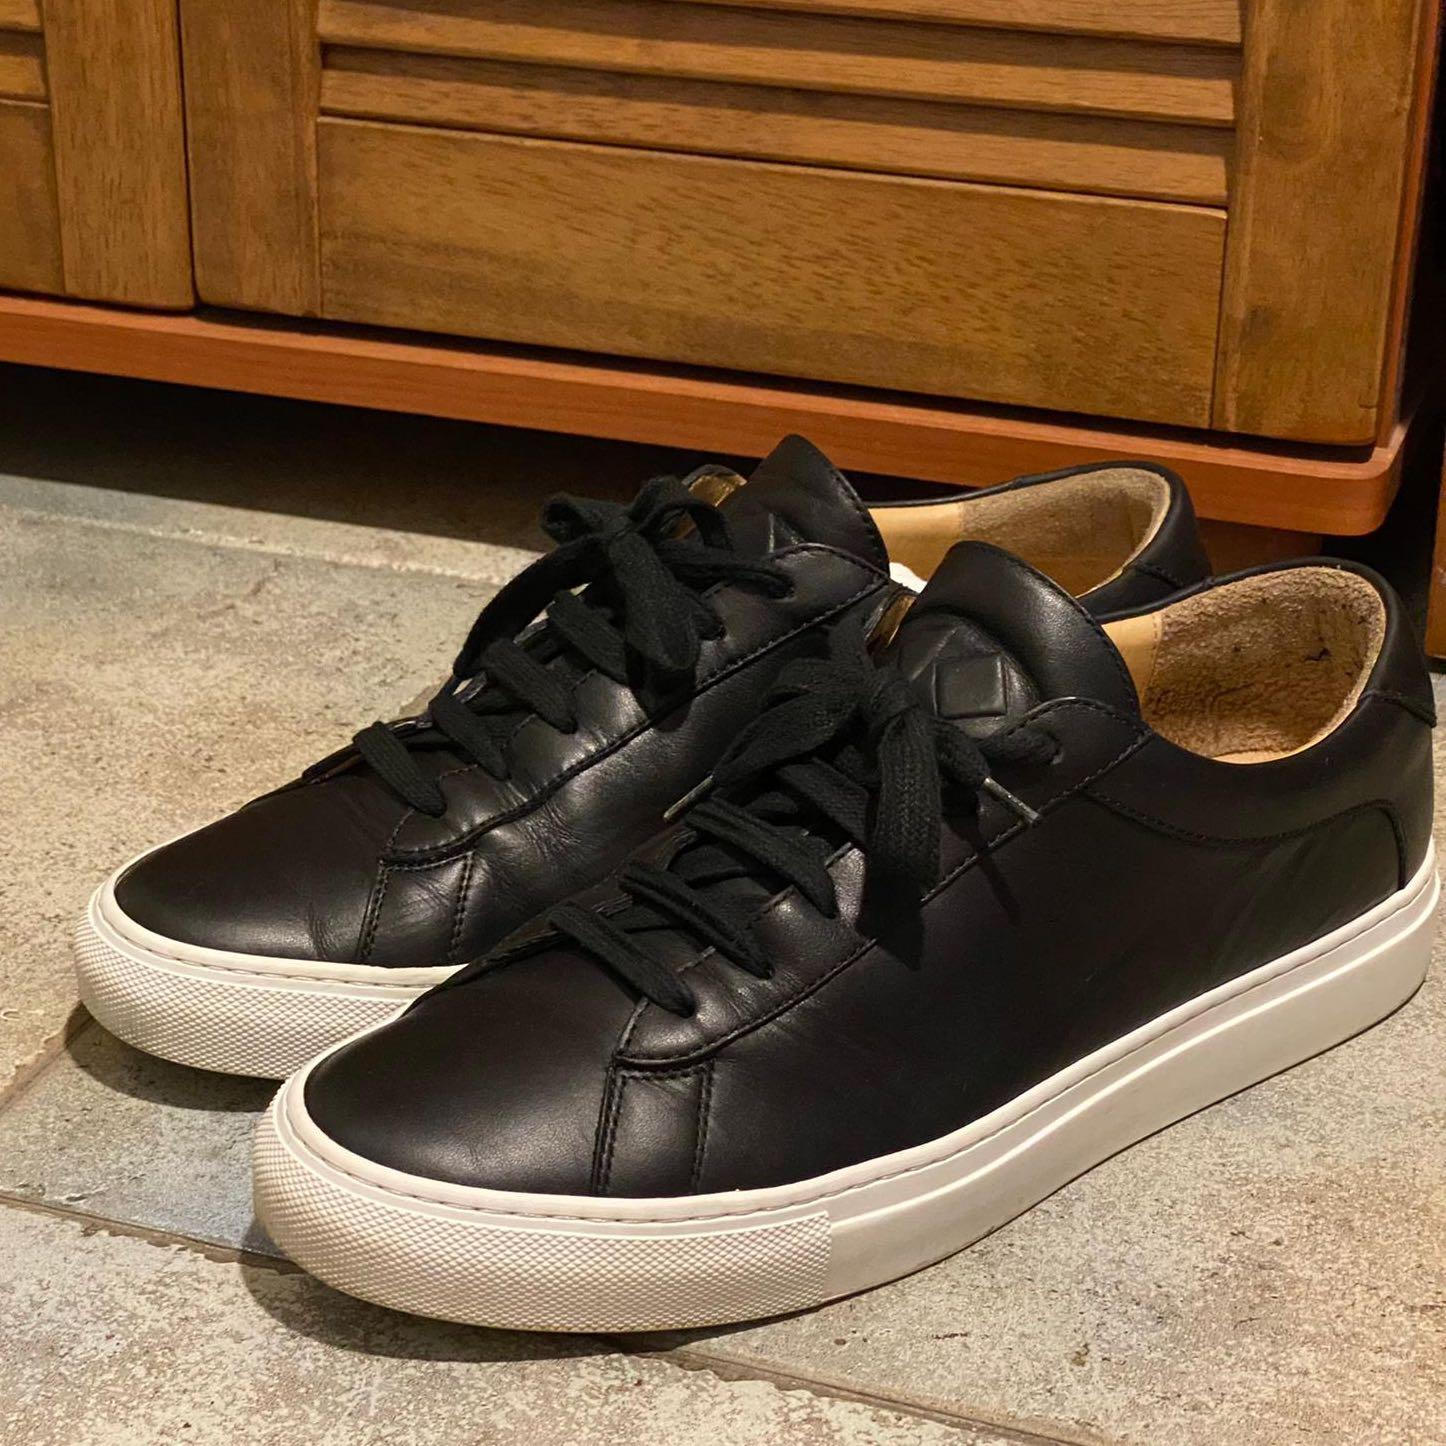 koio leather sneakers